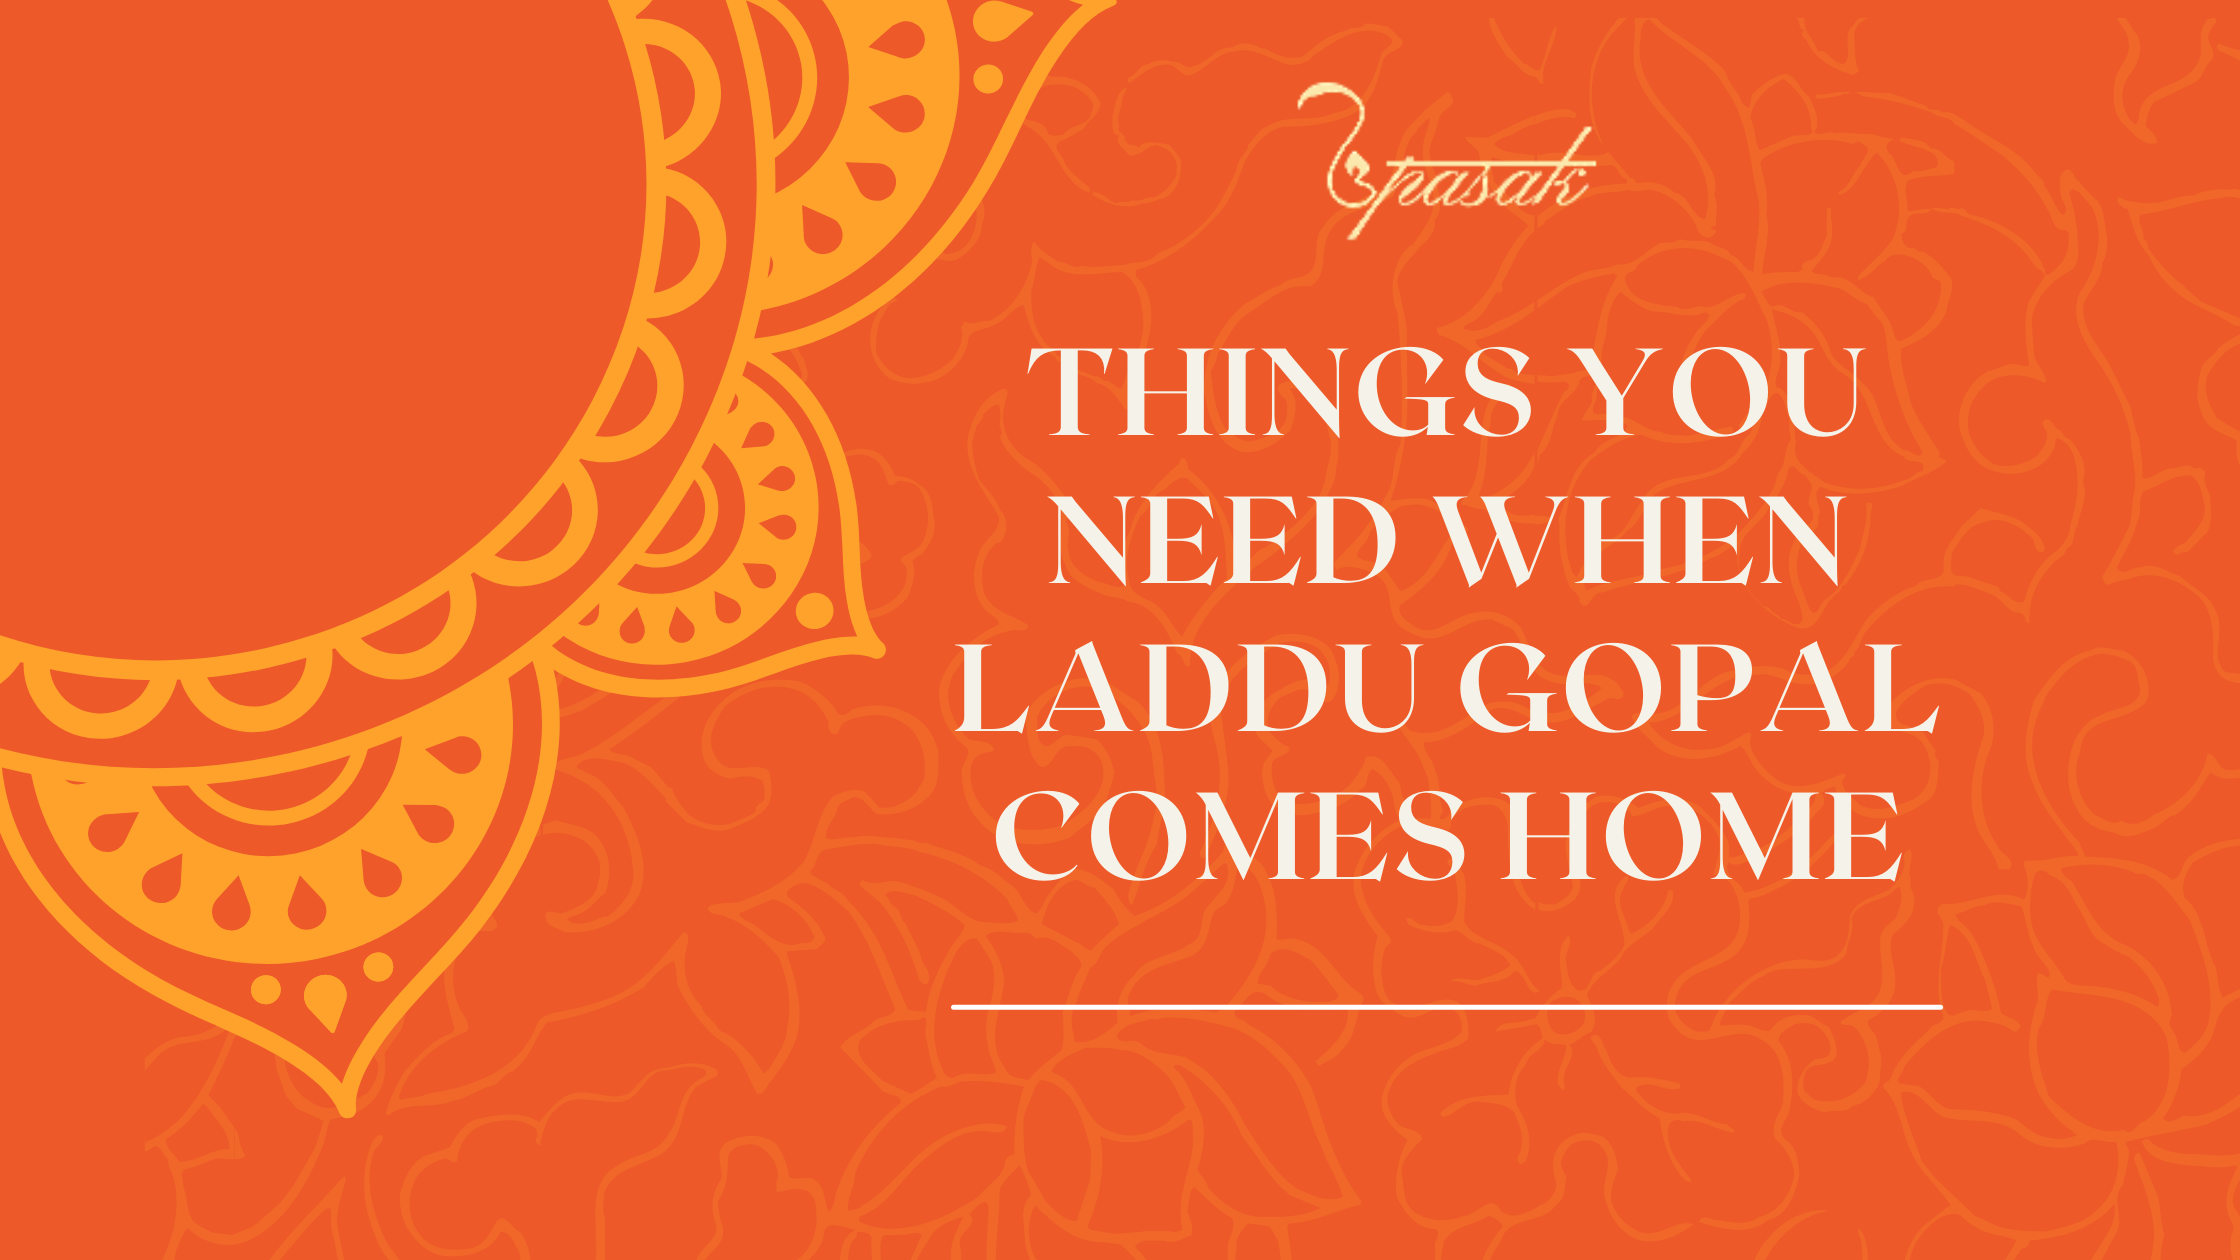 Things You Need When Laddu Gopal Comes Home